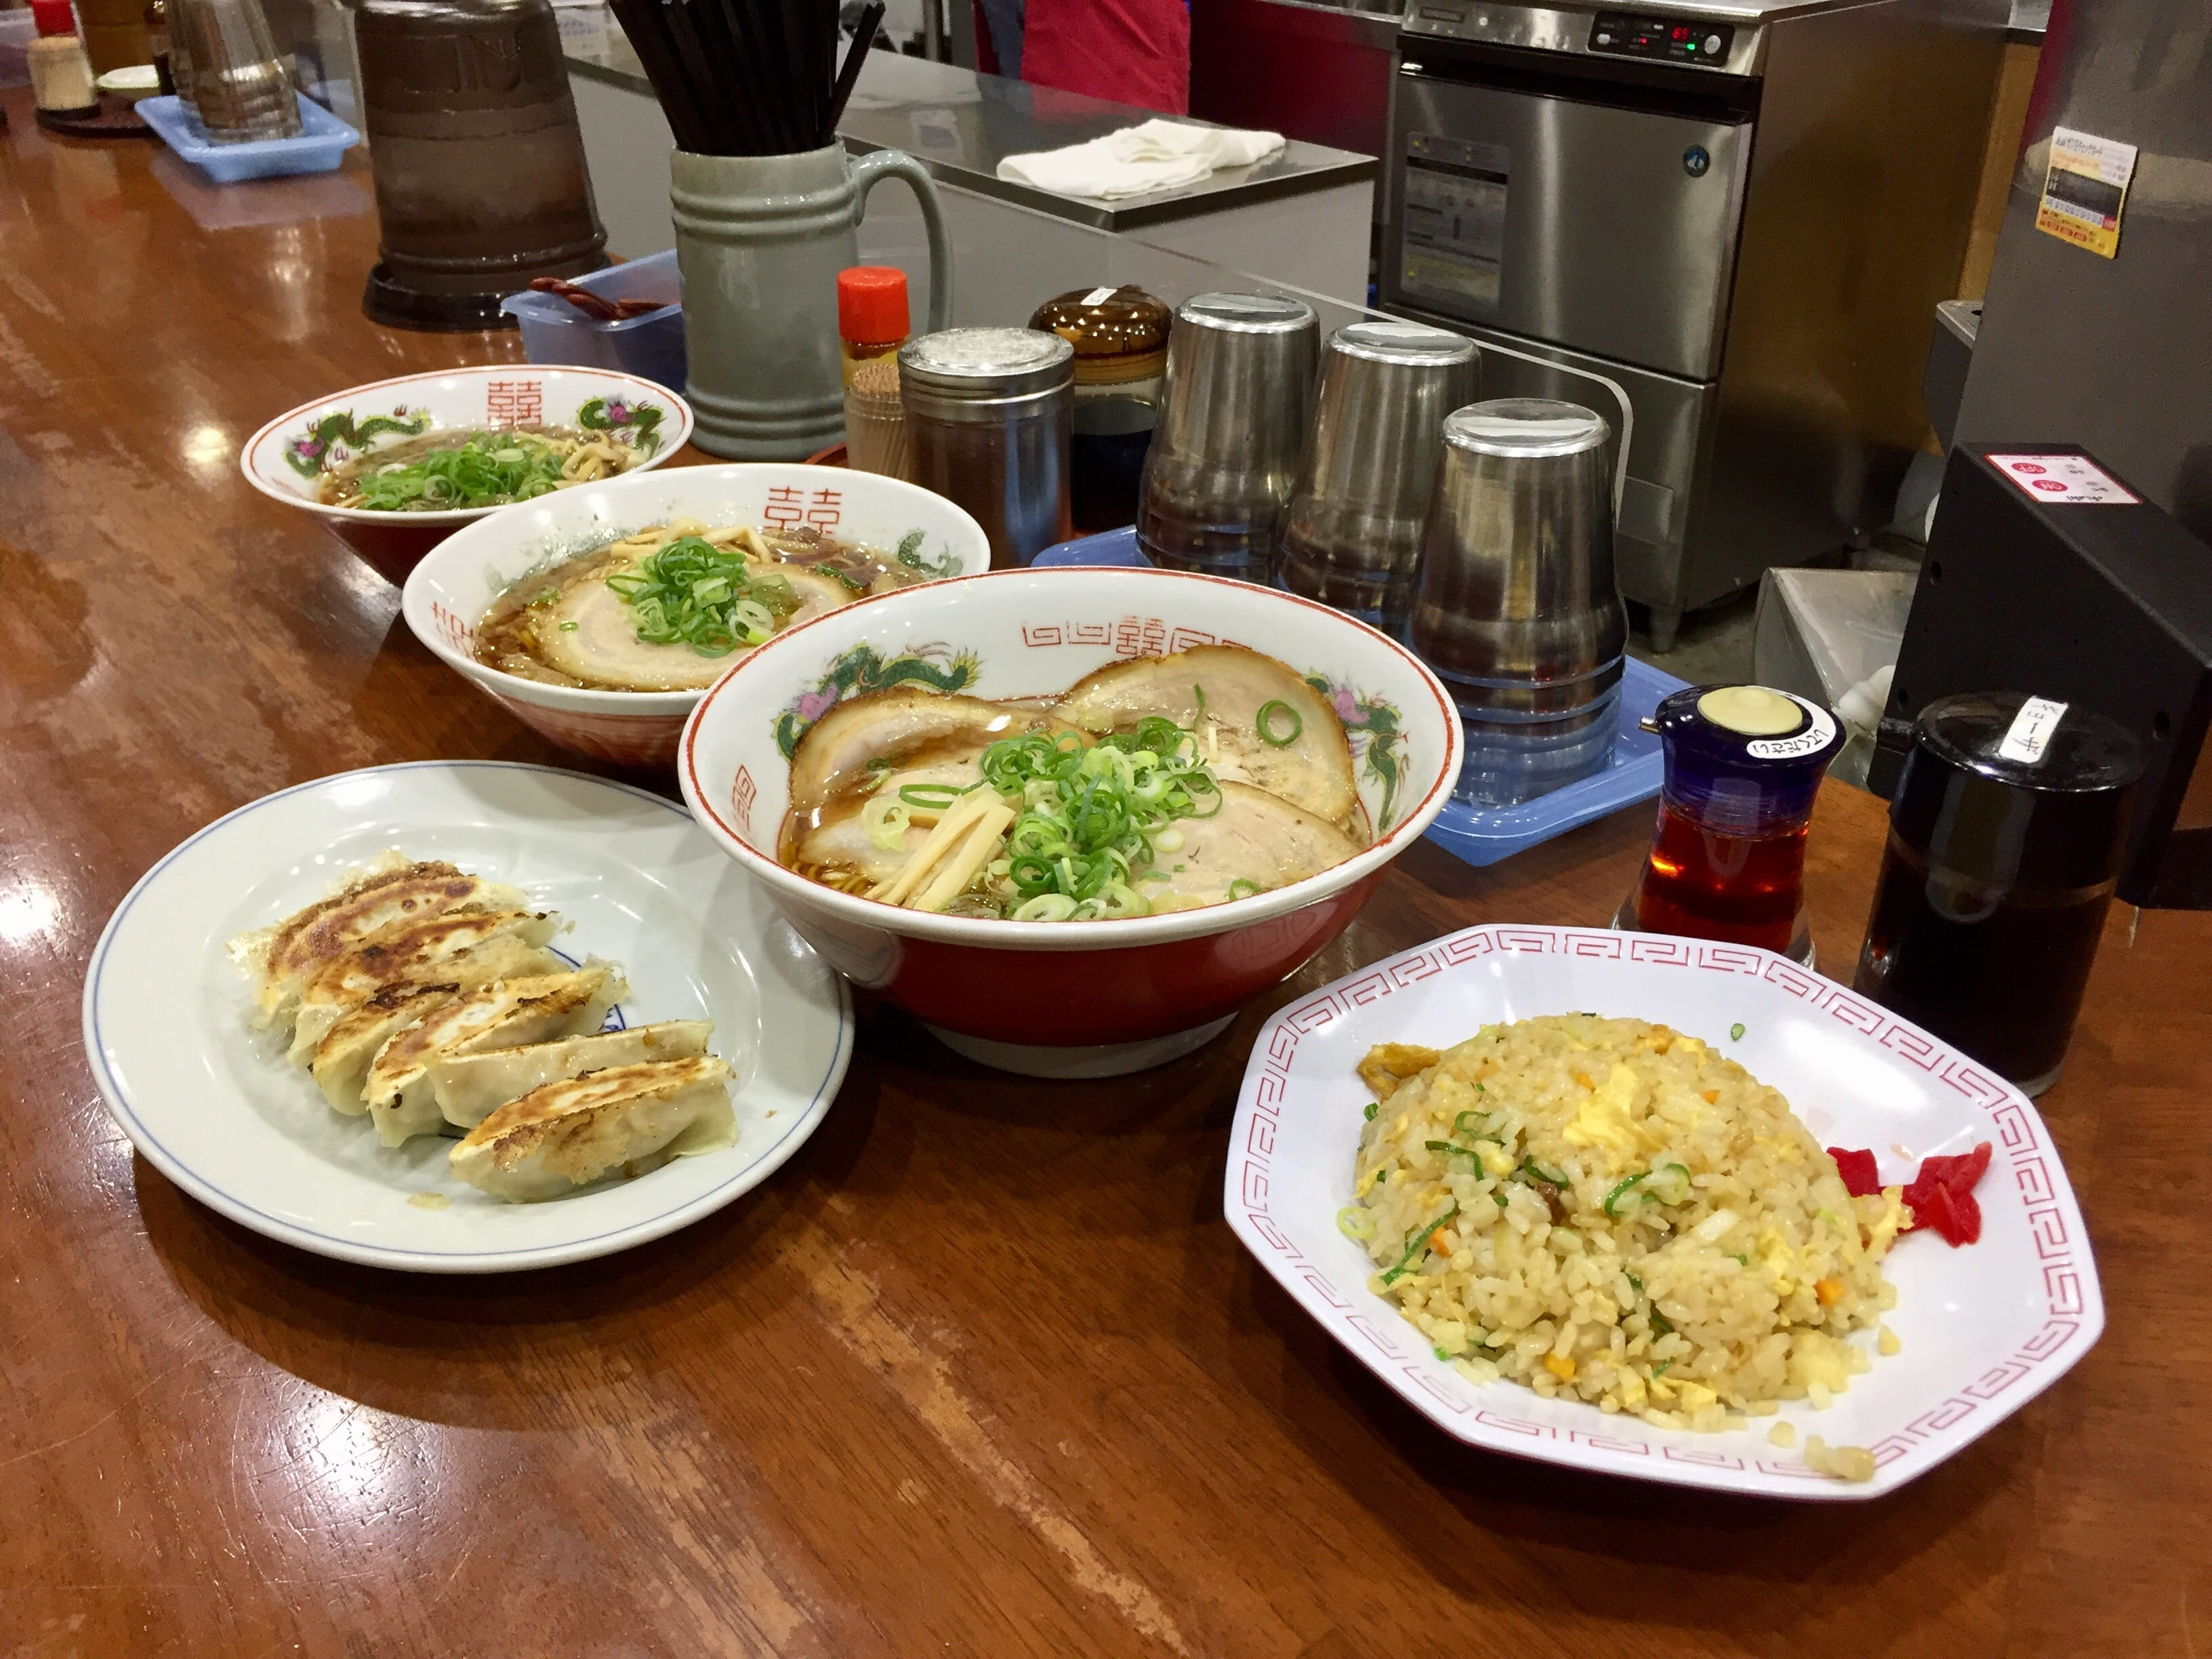 Ramen, dumpling and fried rice for Dinner at Onomichi JR Station